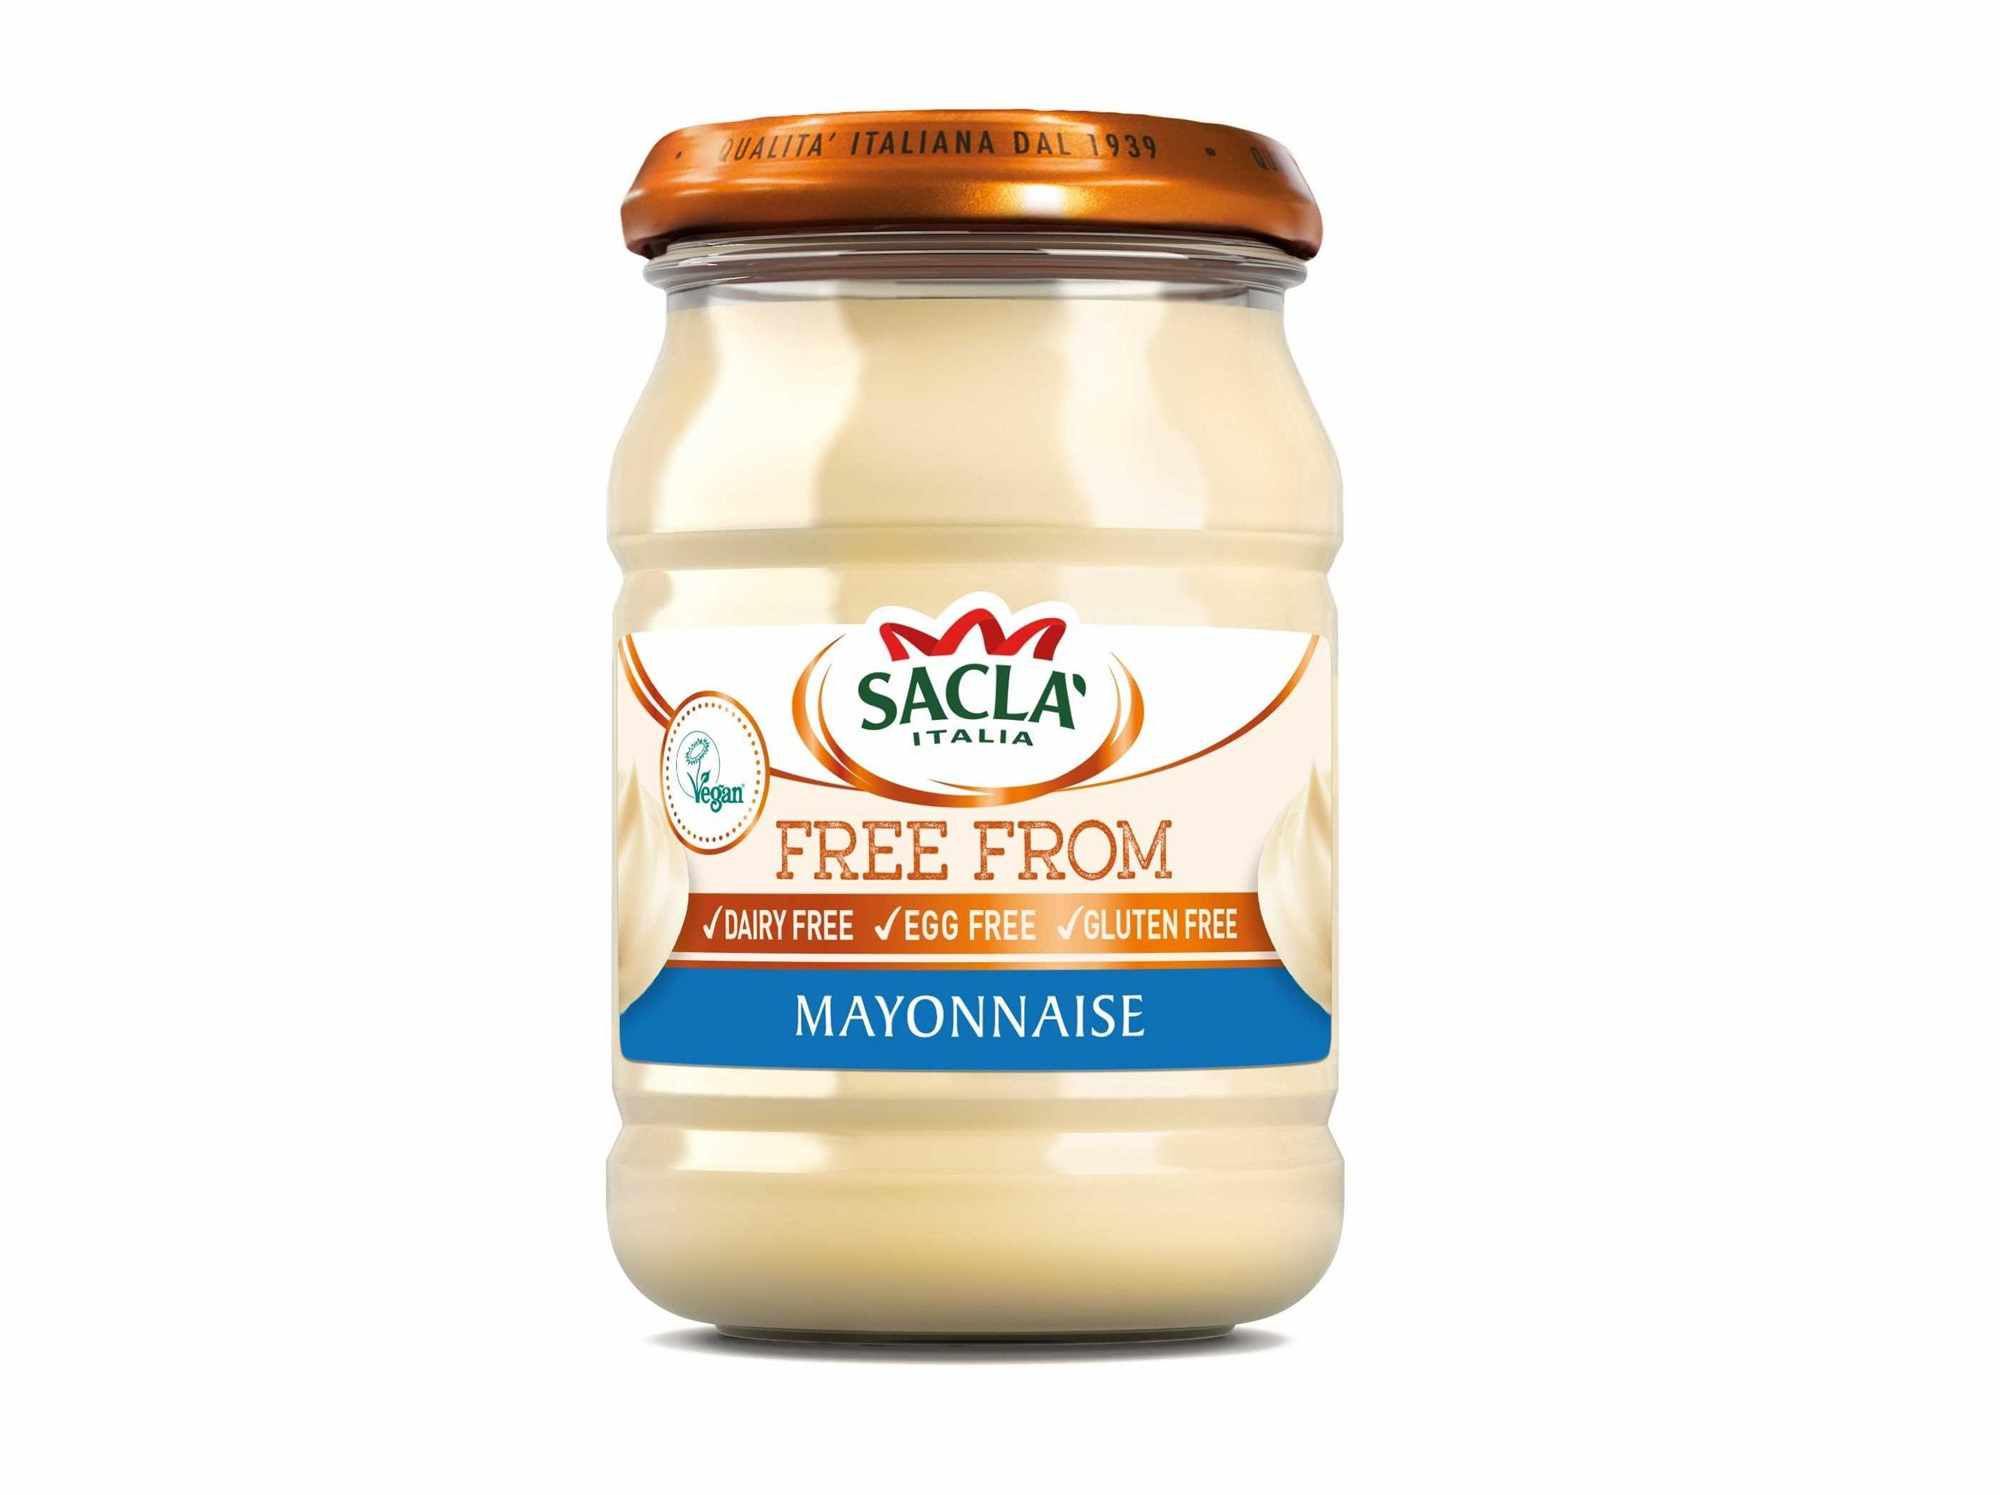 Sacla' Free From - Mayonnaise, Ocado